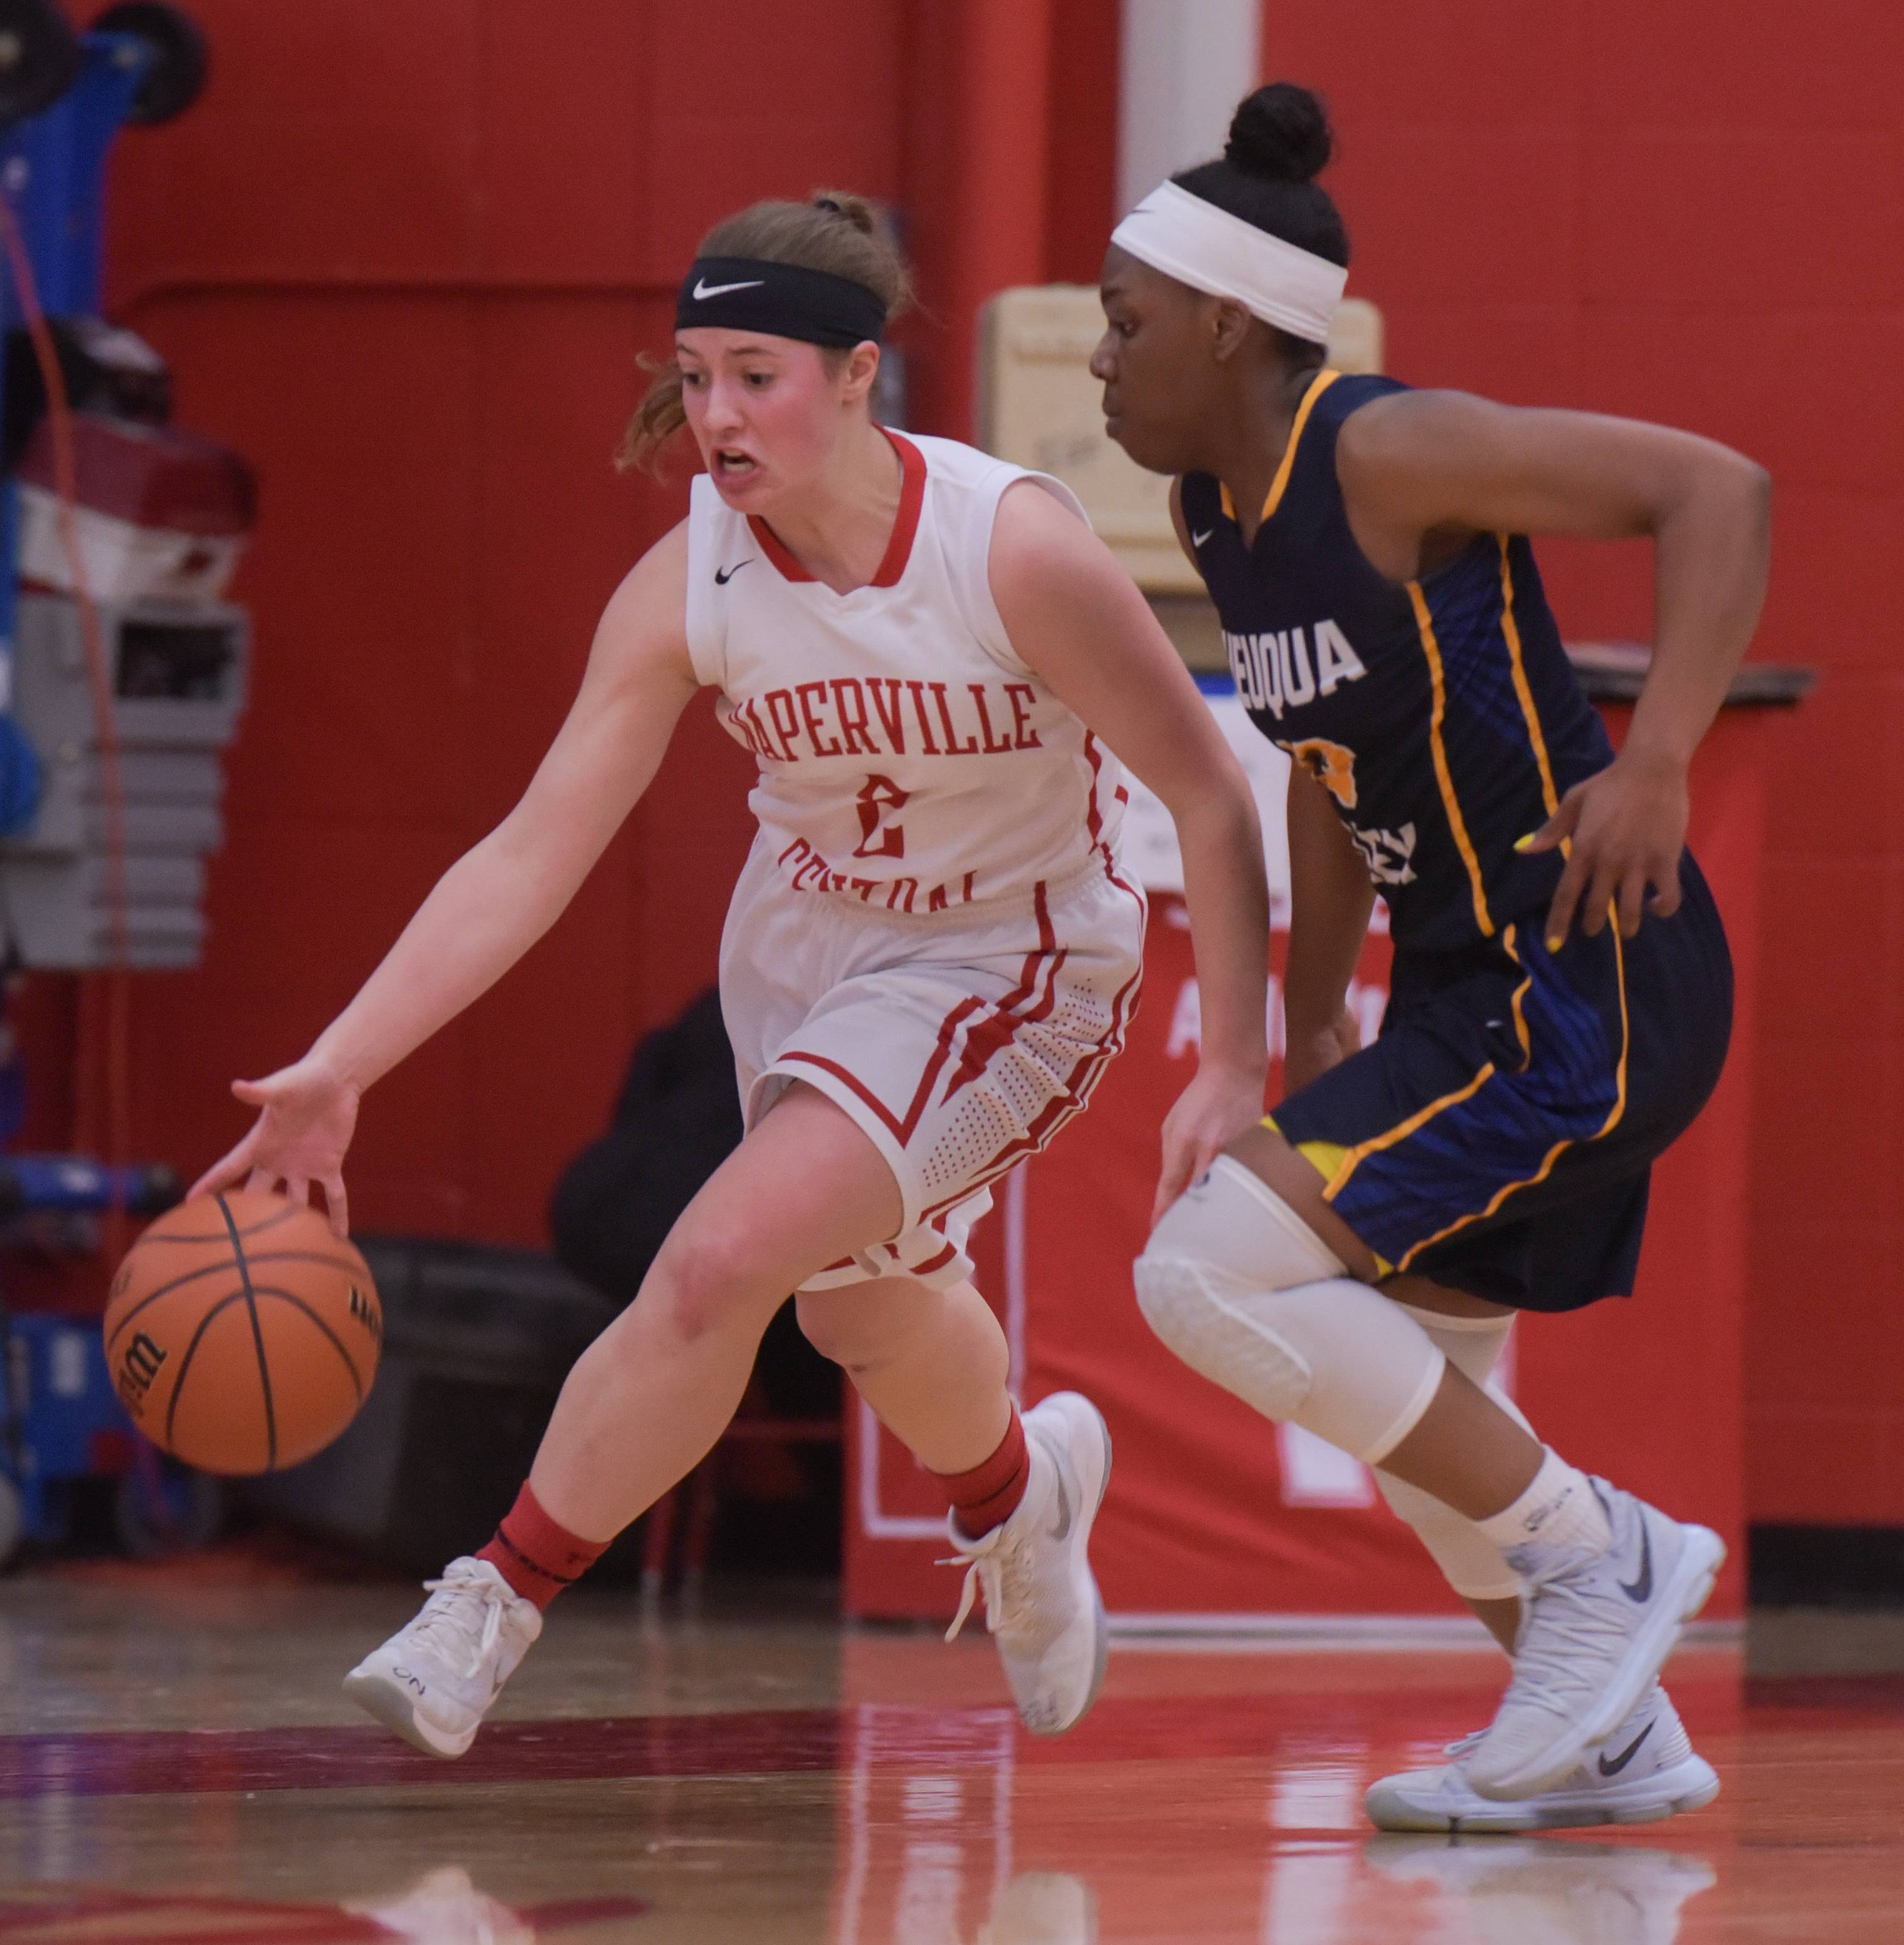 Naperville Central's Gabi Melby (2) moves the ball down the court past Neuqua Valley's Jada Harvey (13) during the Class 4A girls basketball regional semifinals at Naperville Central on February 14, 2018.